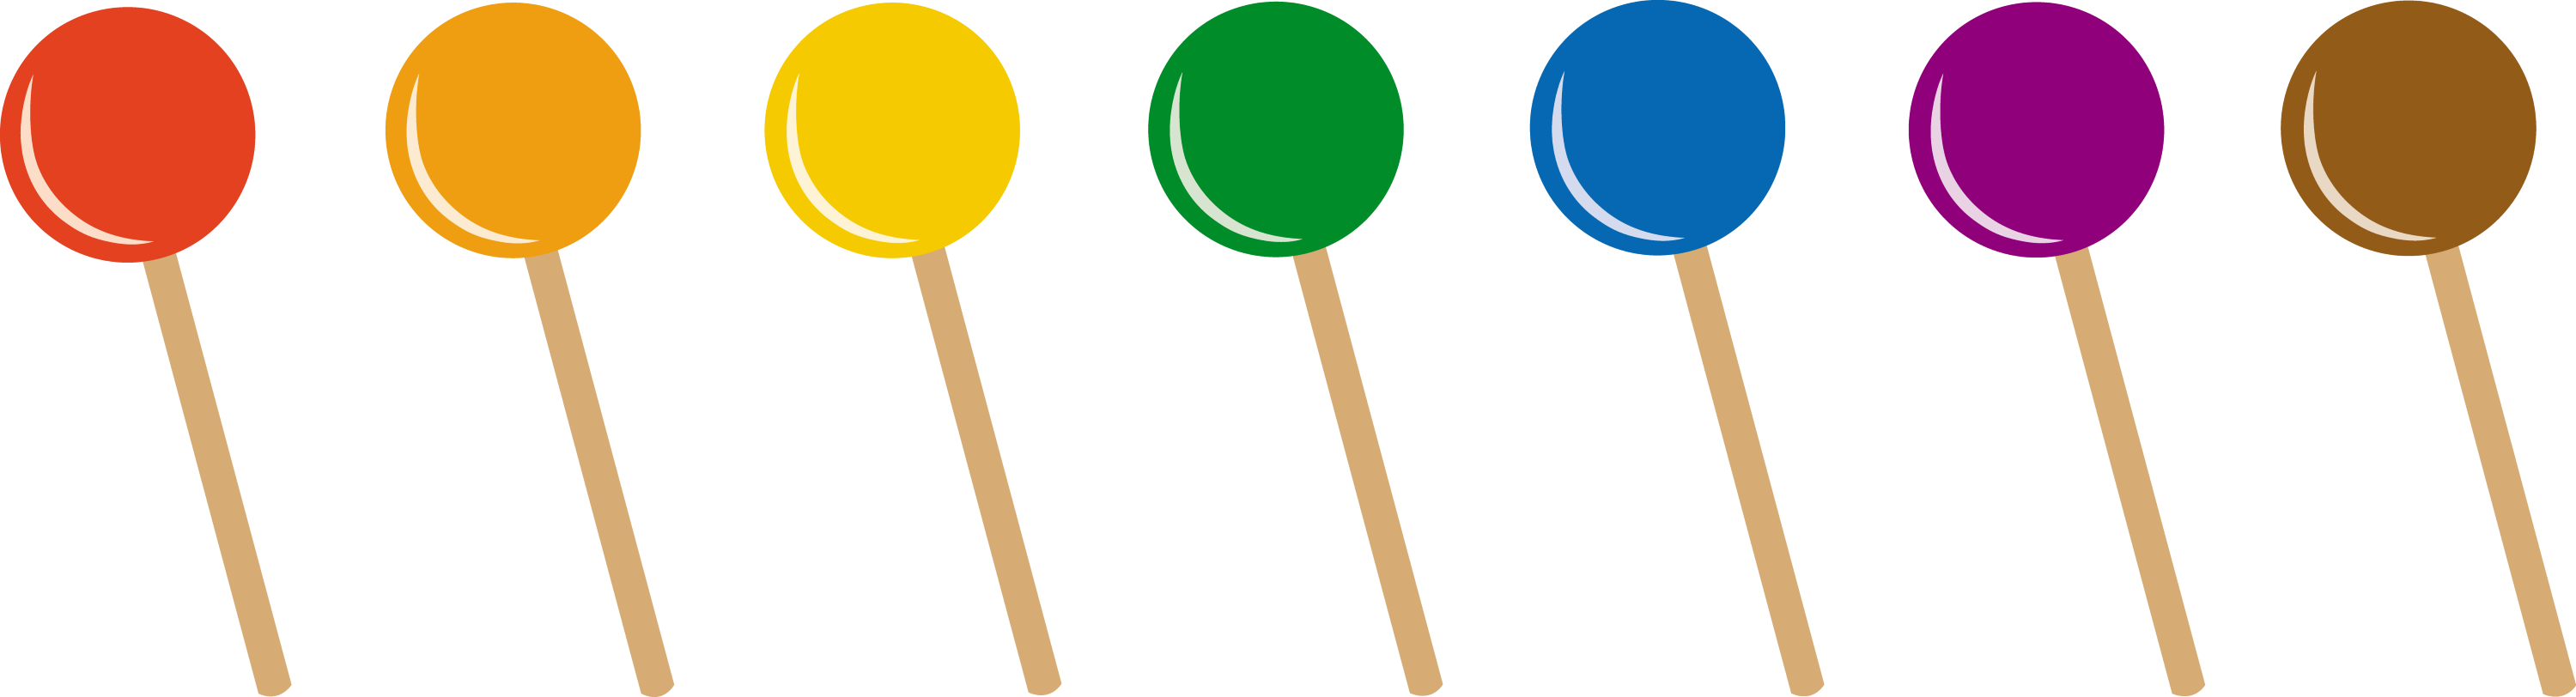 Lollipops in Seven Flavors - Free Clip Art